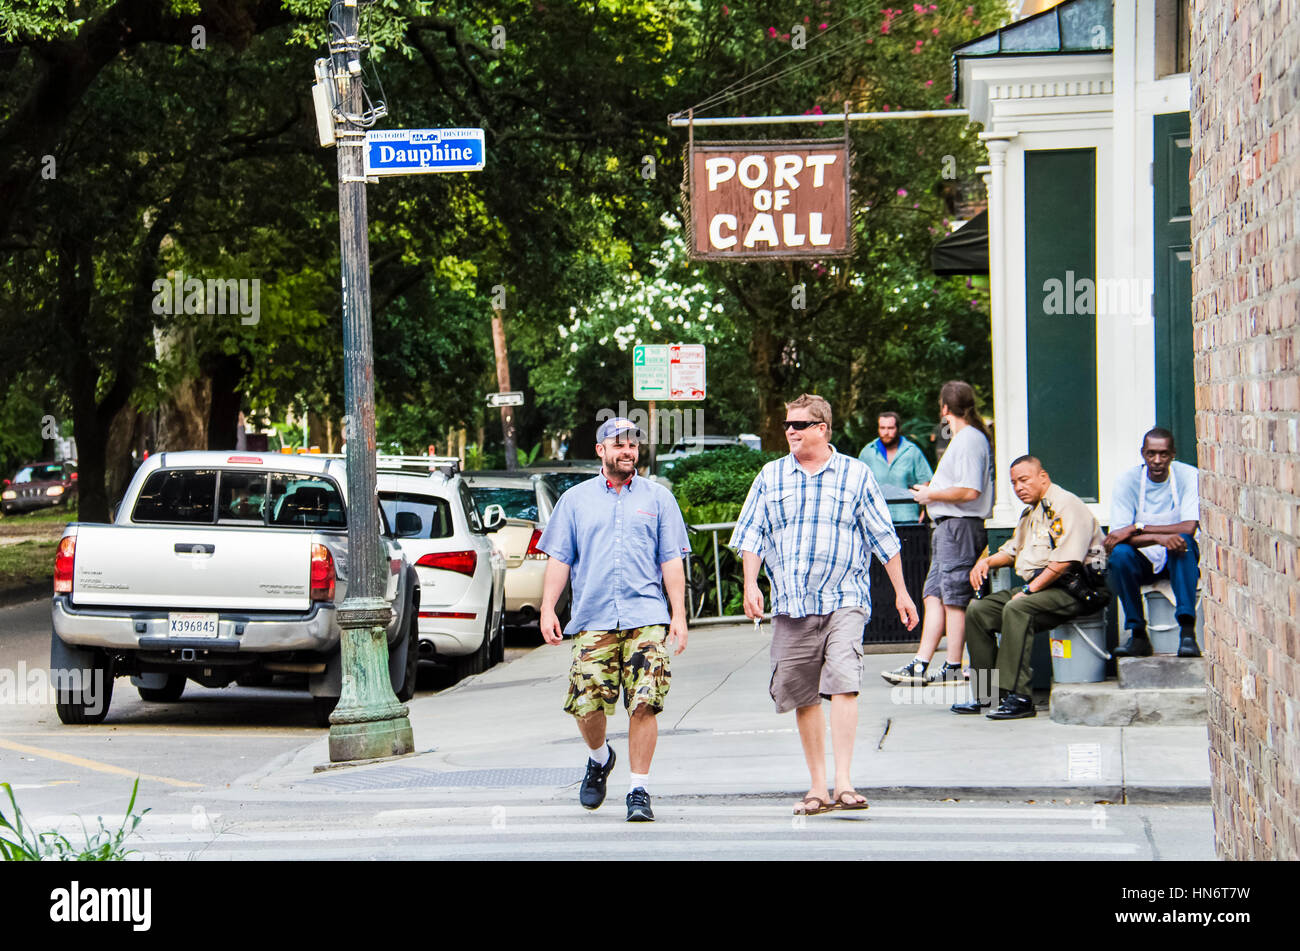 New Orleans - July 13, 2015: People walking on historic Dauphine district during daytime with port of call sign Stock Photo